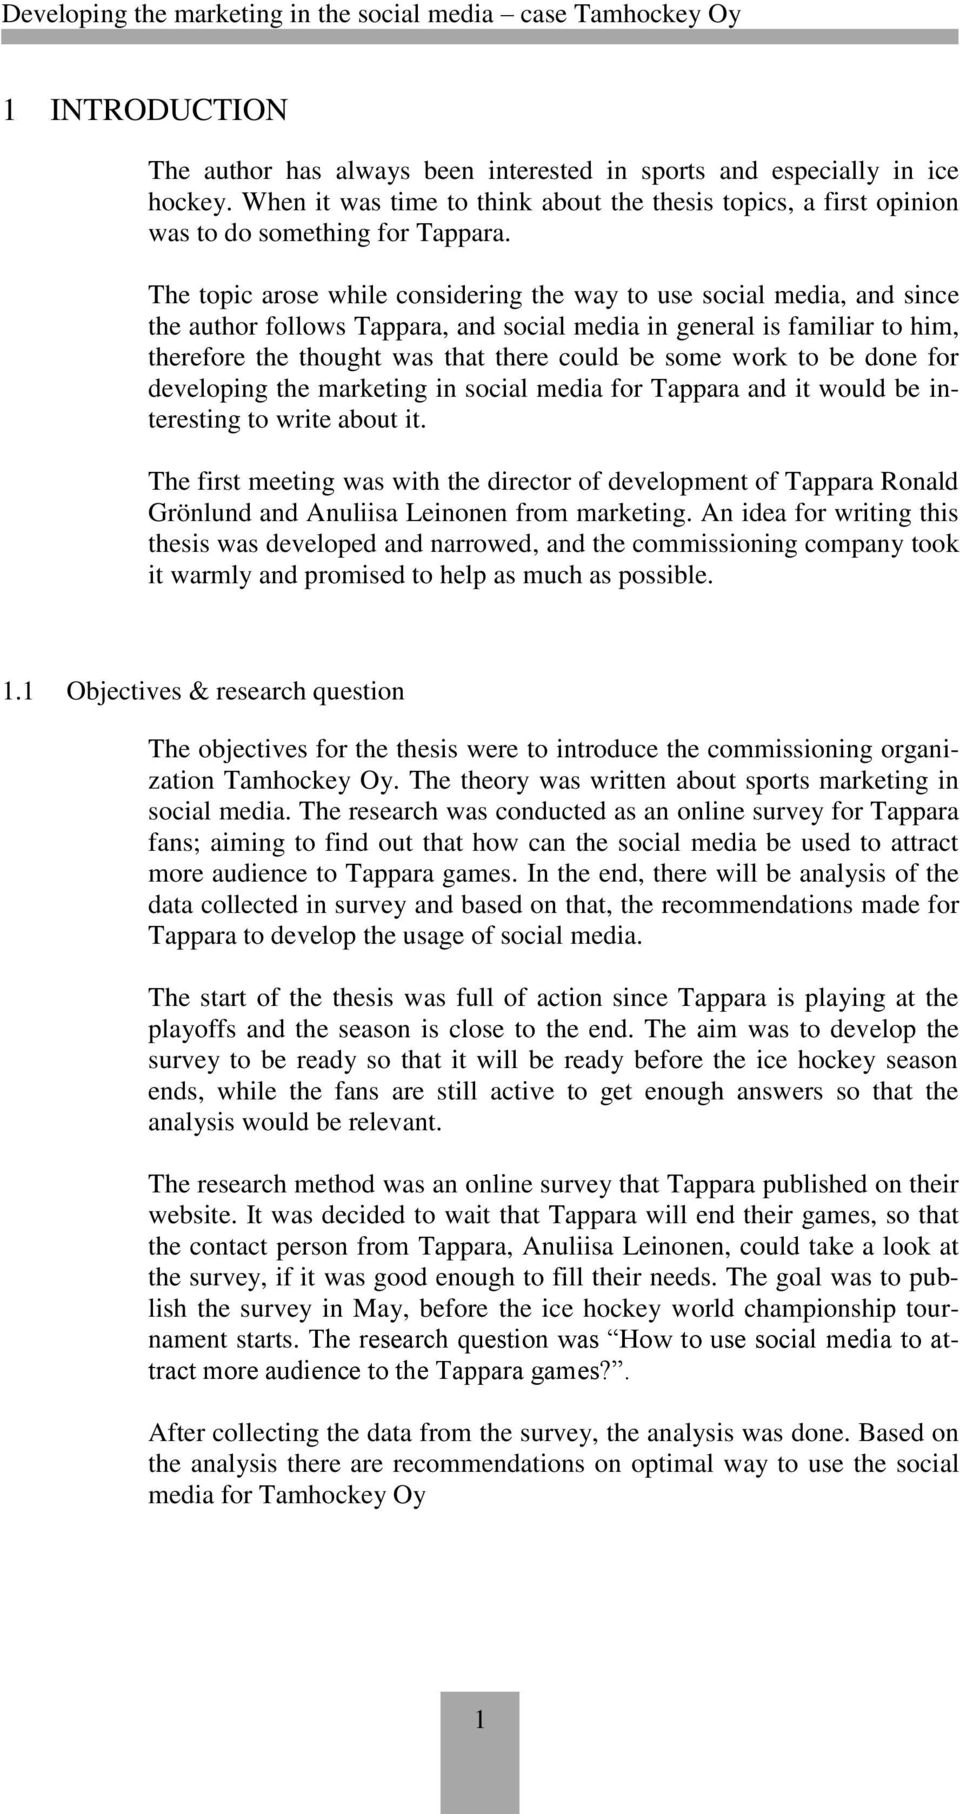 work to be done for developing the marketing in social media for Tappara and it would be interesting to write about it.